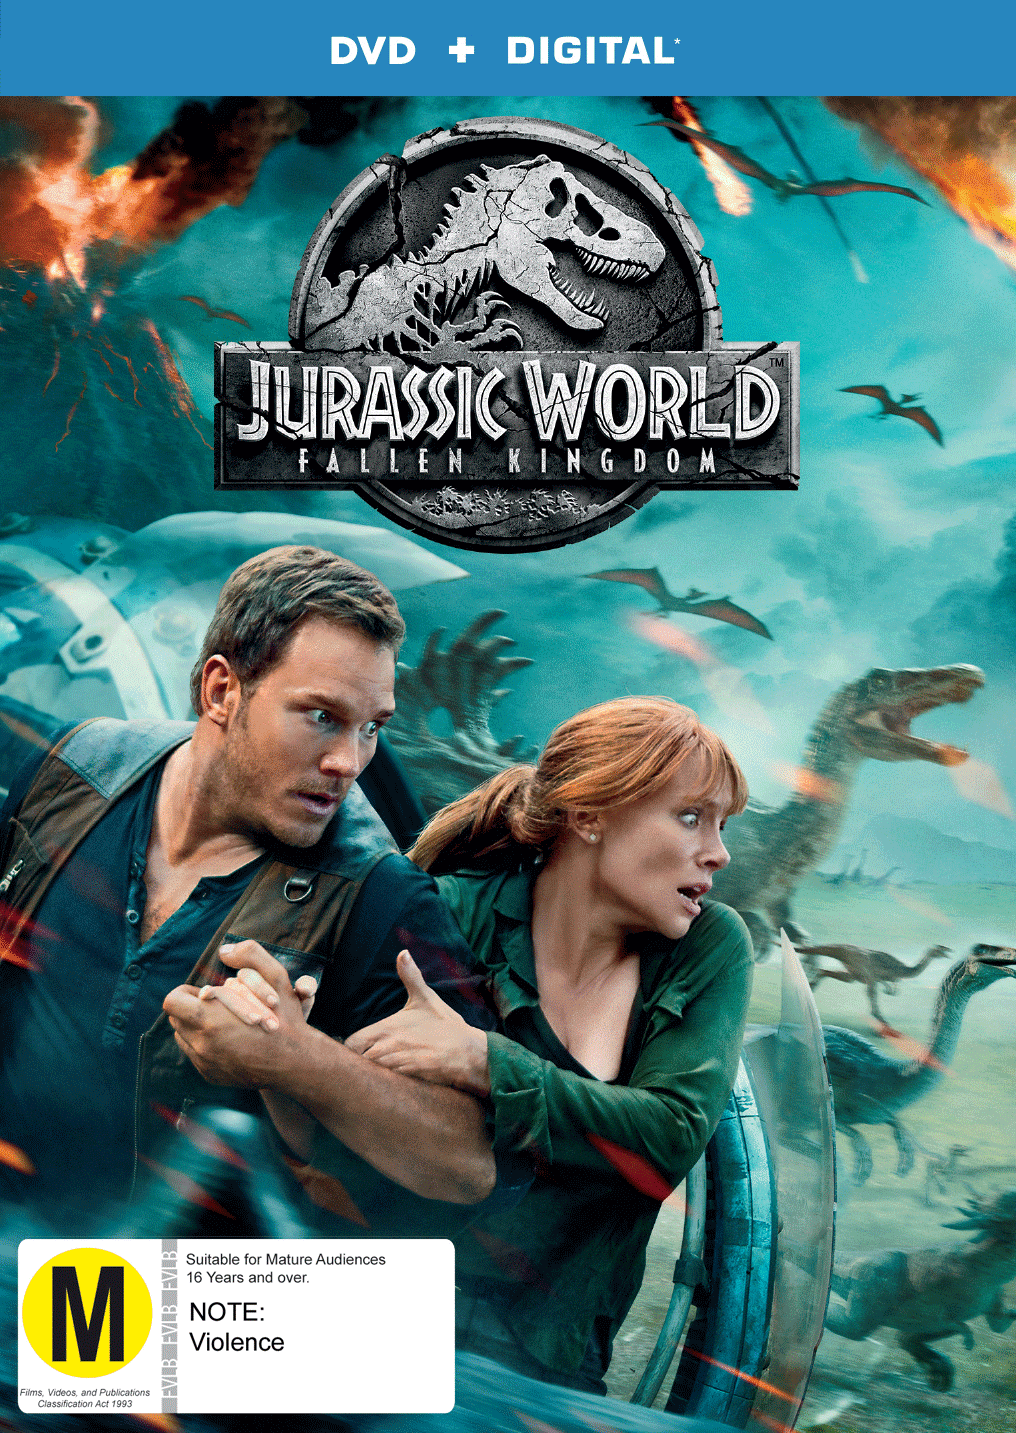 9317731139277_Jurassic World Fallen Kingdom_DVD